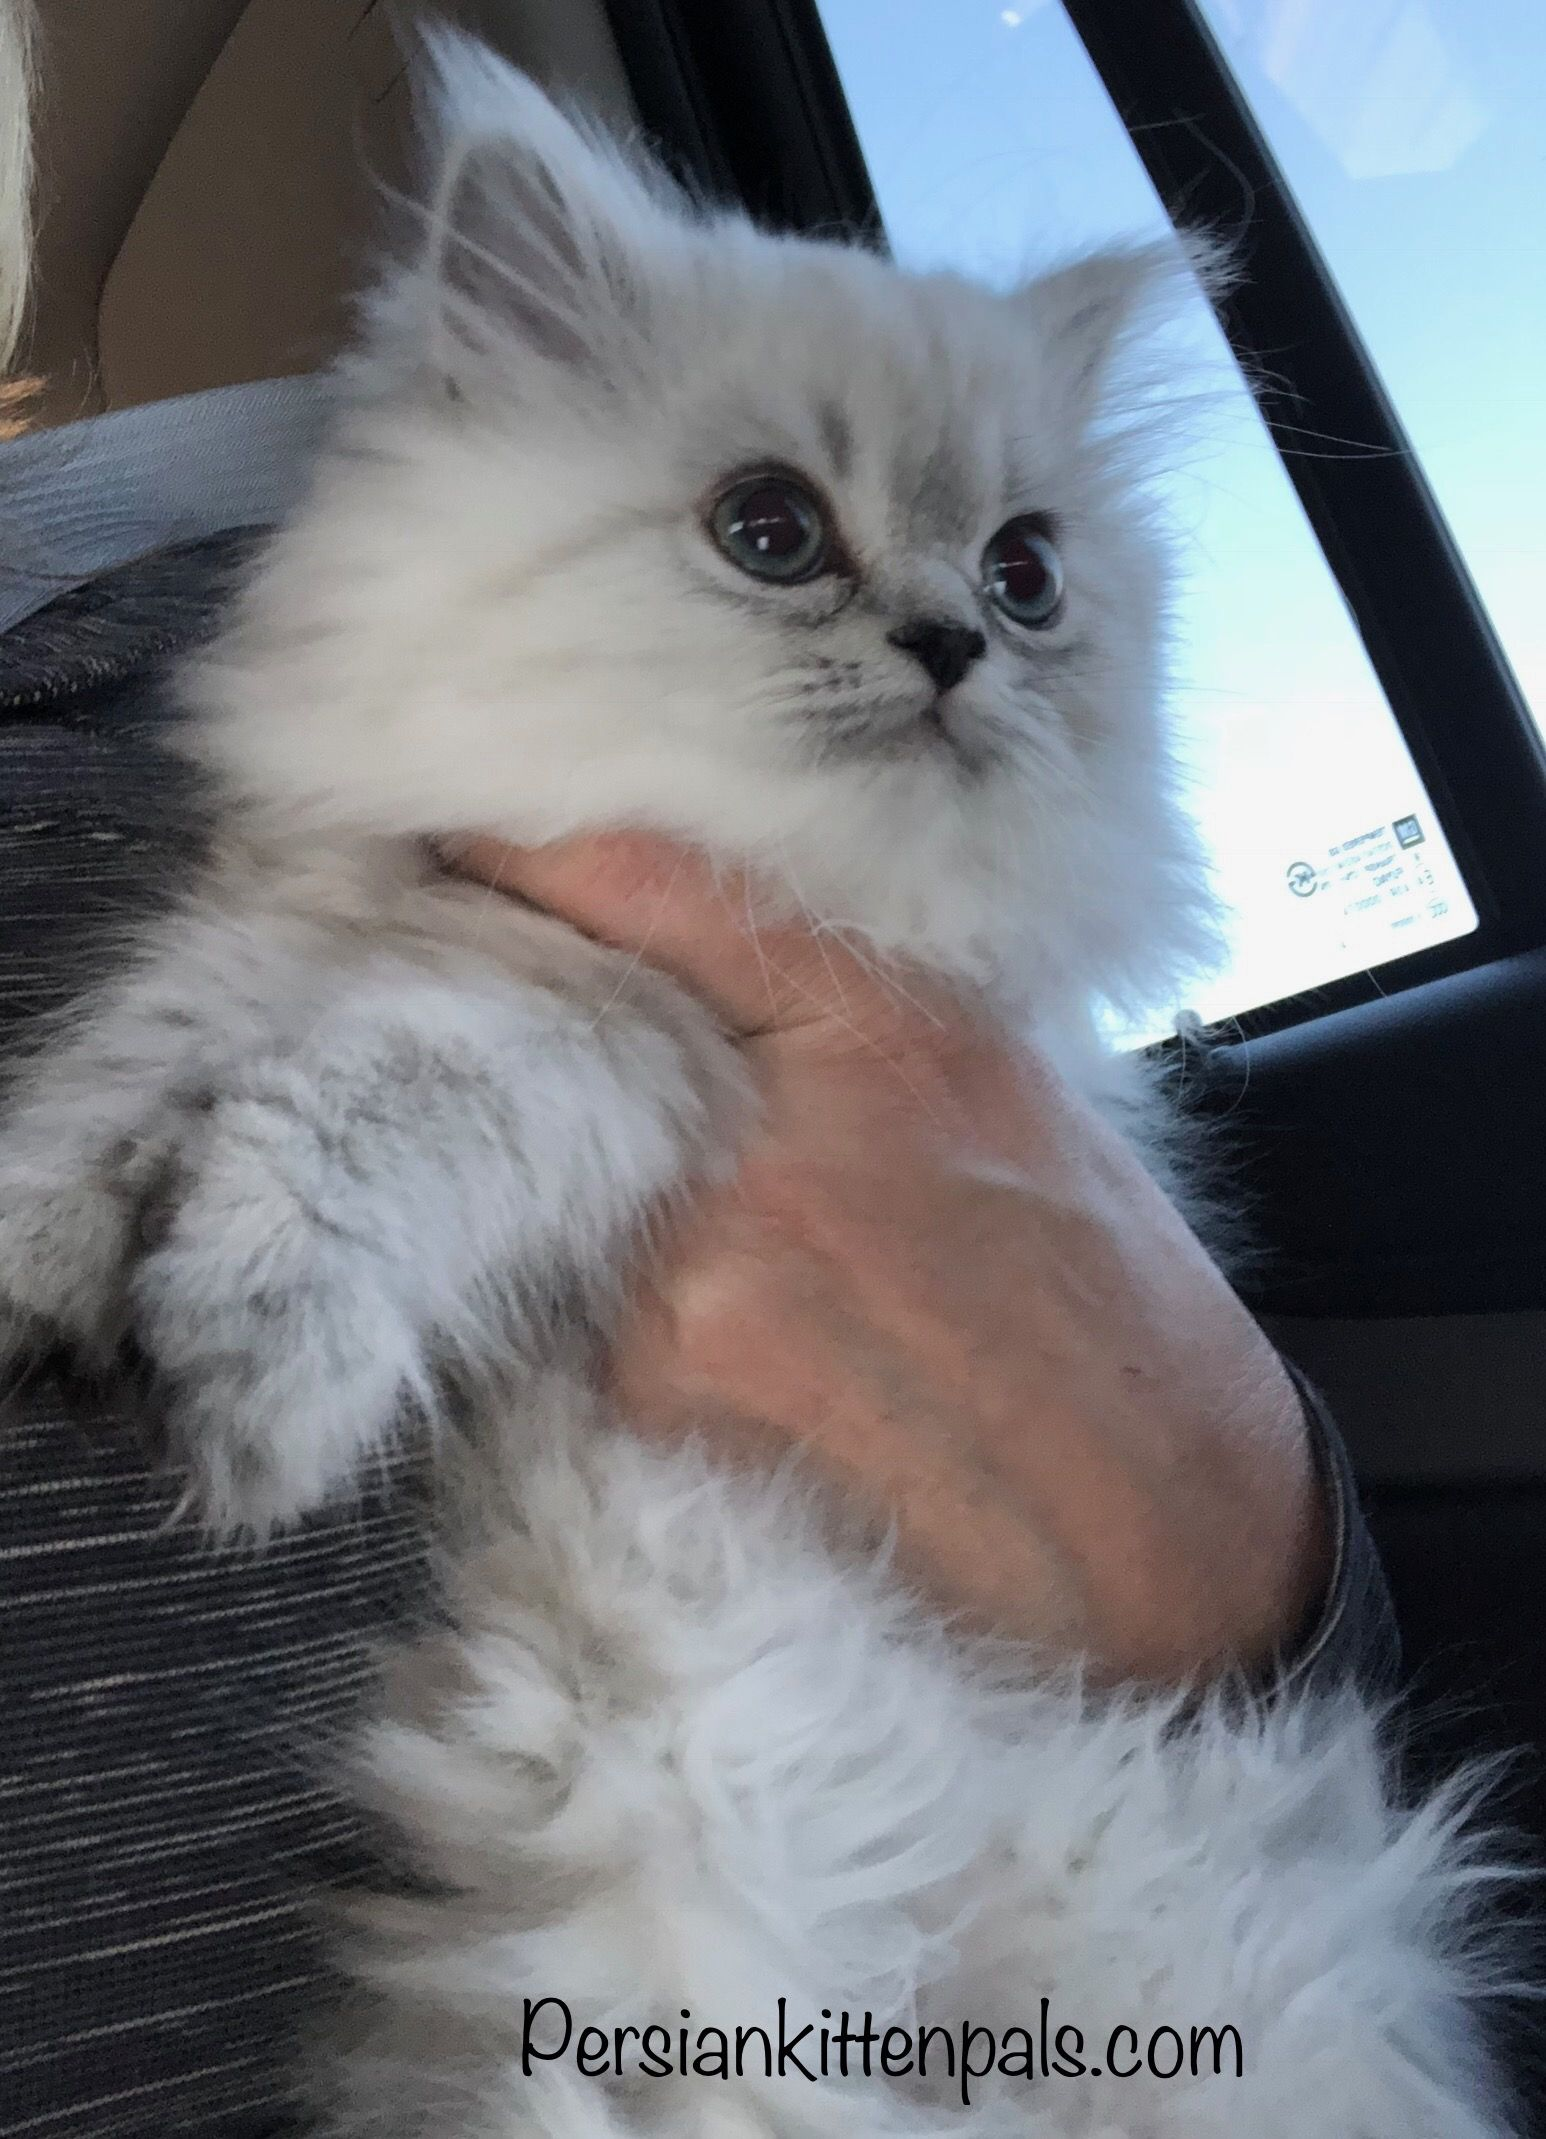 Persiankittenpals Com My Sweet Angel Excited On Her Drive To Her Neiman Marcus Photo Shoot Look For Her Persian Kittens For Sale Persian Kittens Kittens